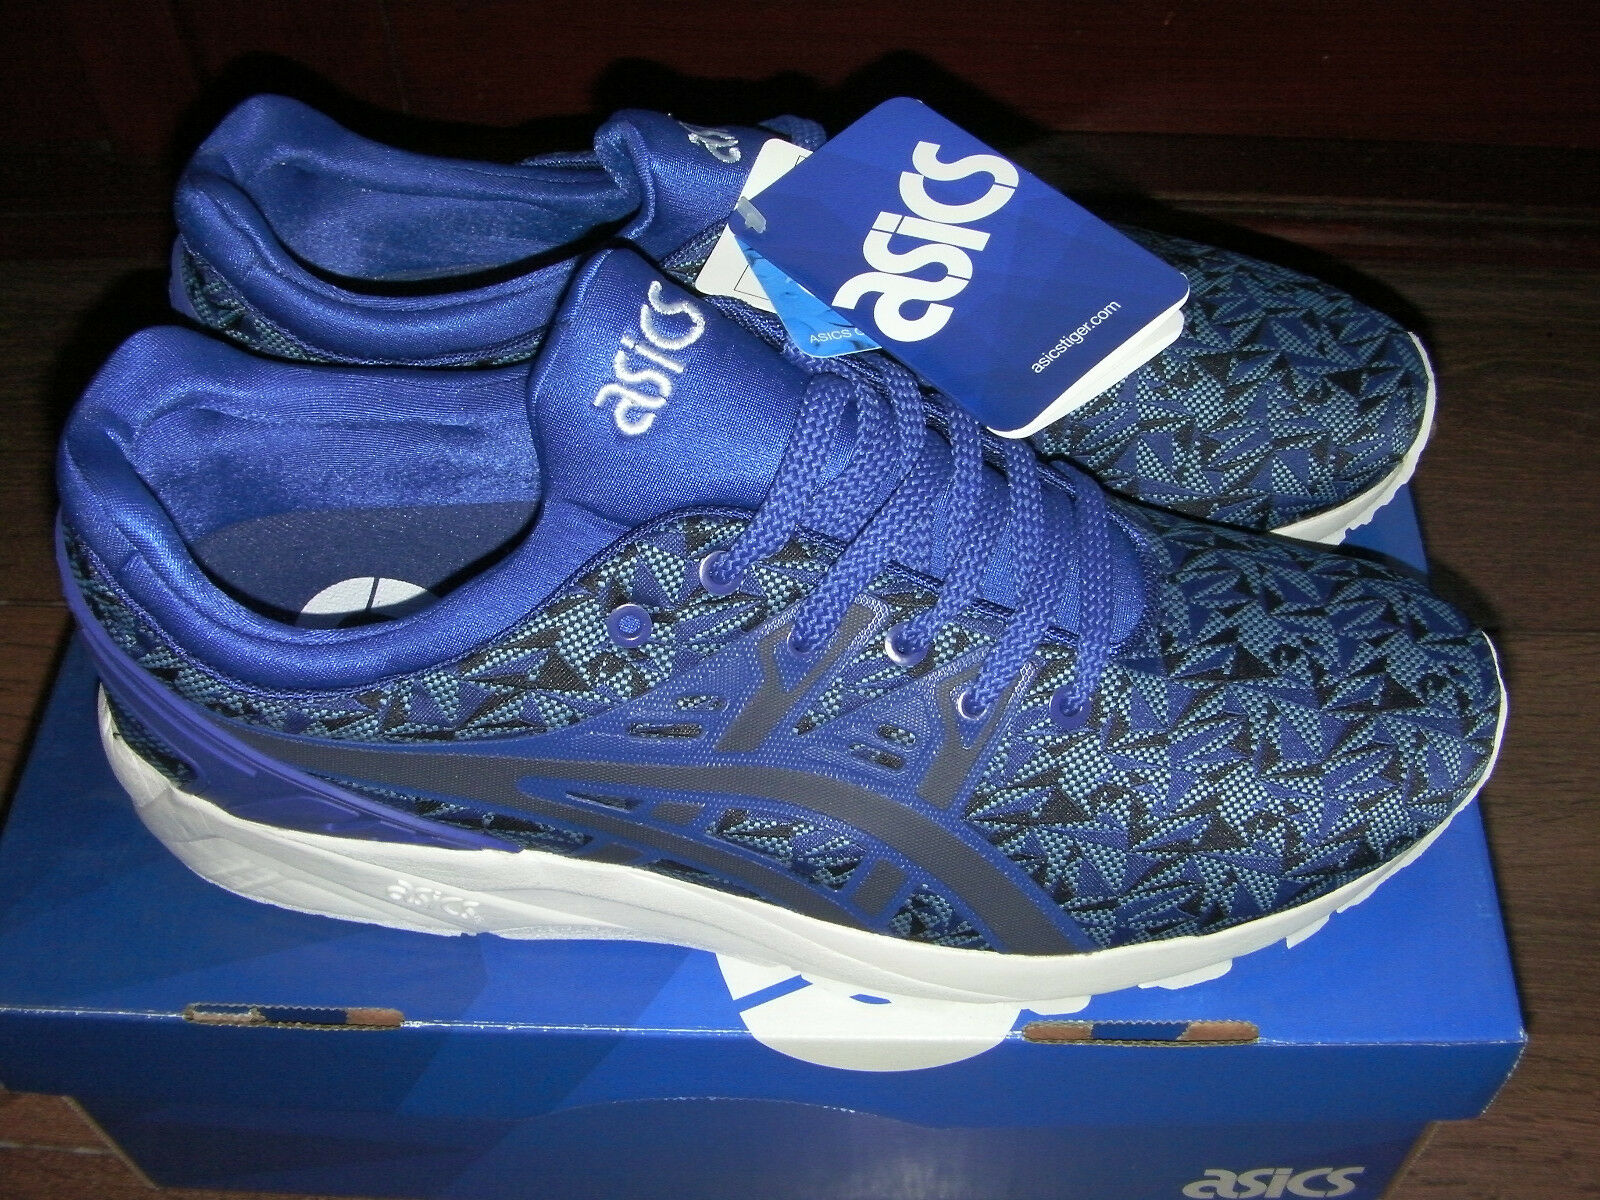 Asics Gel Kayano UK8.5 Evo Men Trainer Schuhes UK8.5 Kayano / 43.5 EU New 54b379